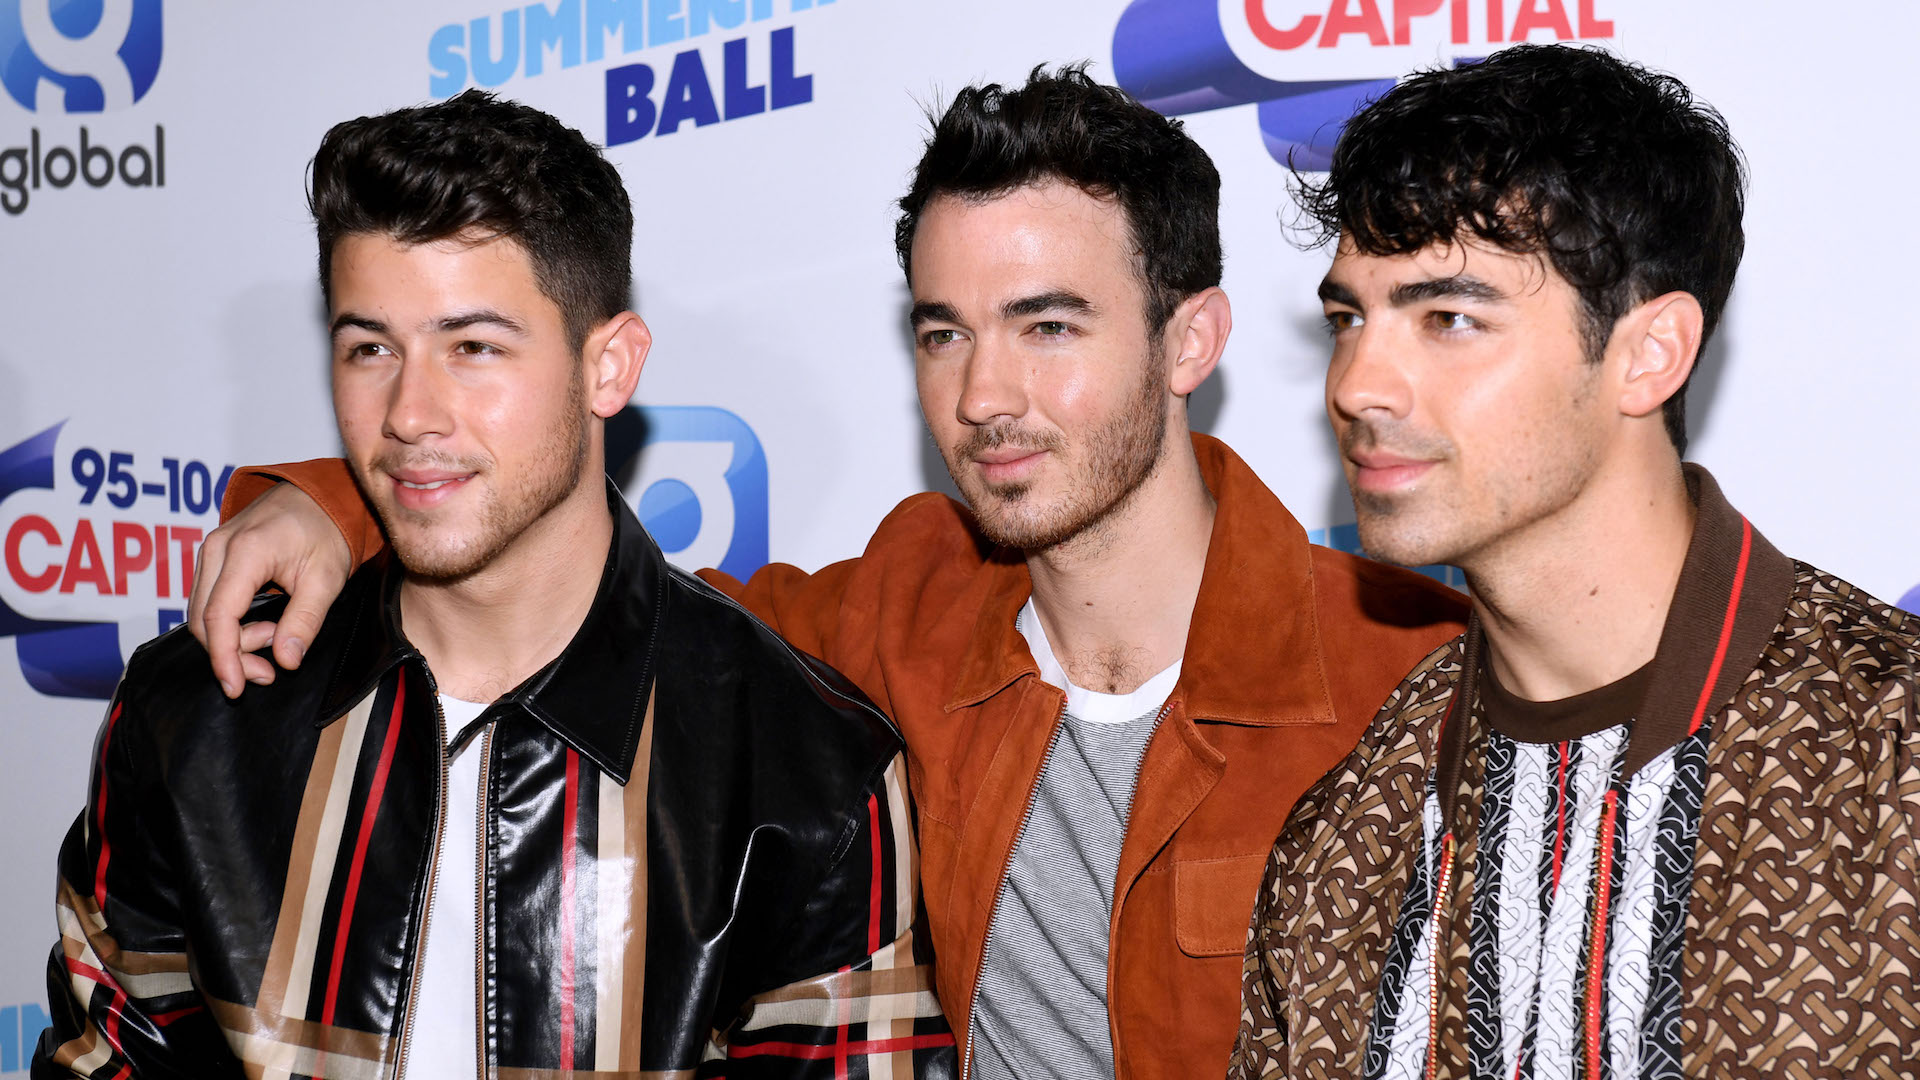 The Jonas Brothers Coordinated Their Concert Outfits, and I Think I'm Crying